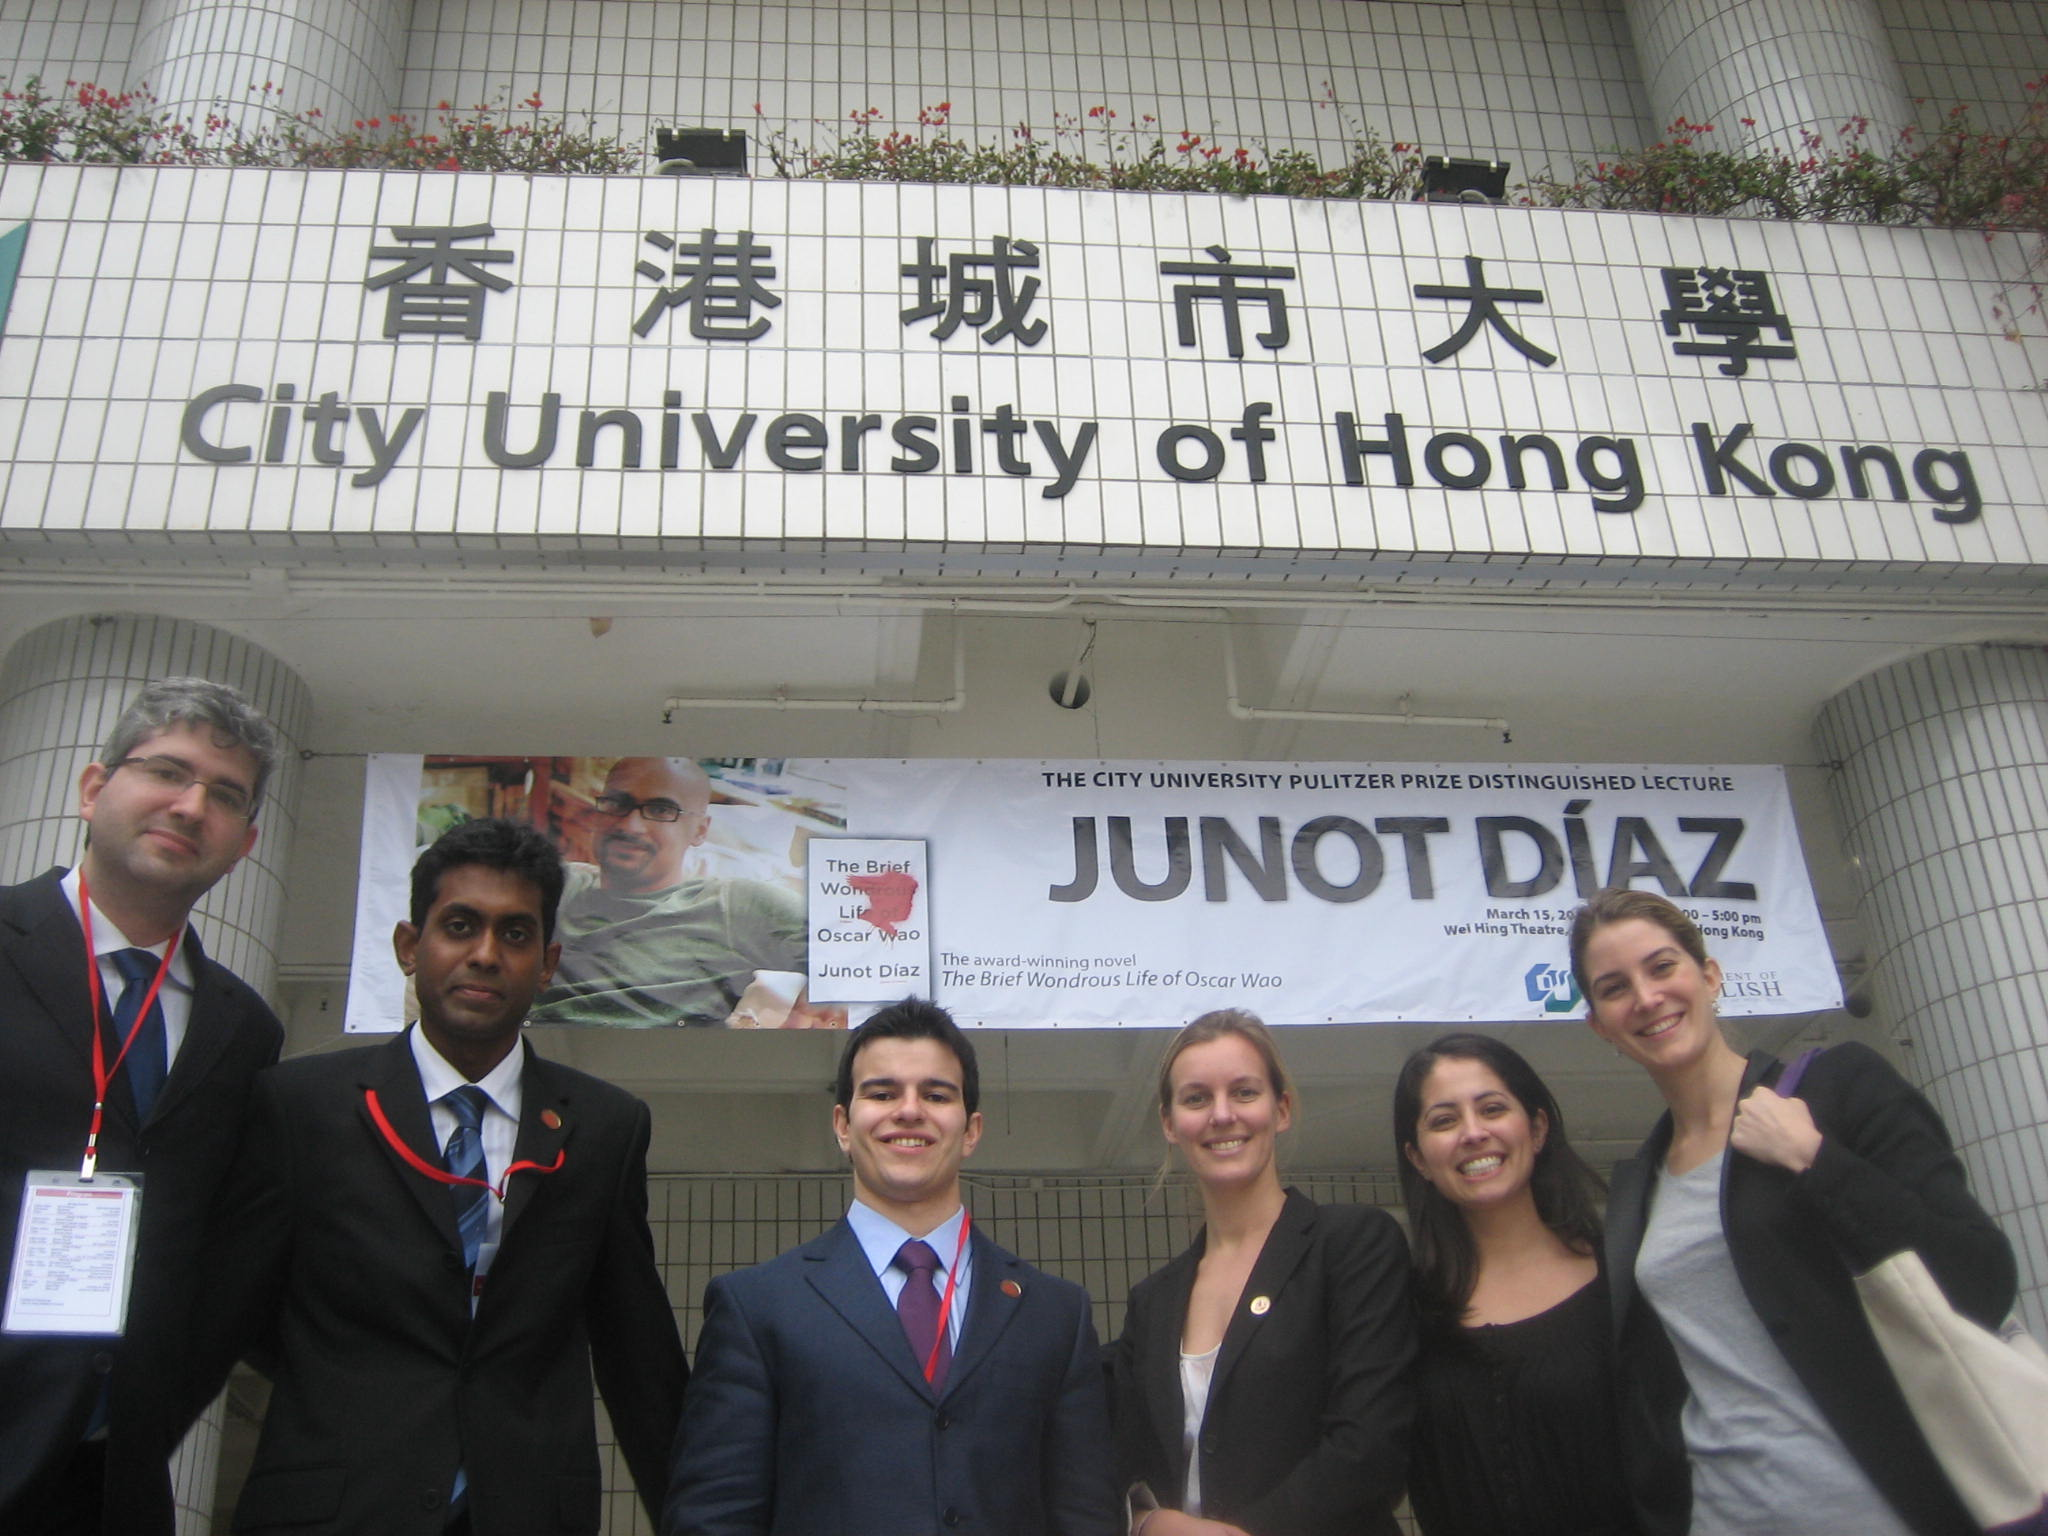 NYU Students at the City University of Hong Kong